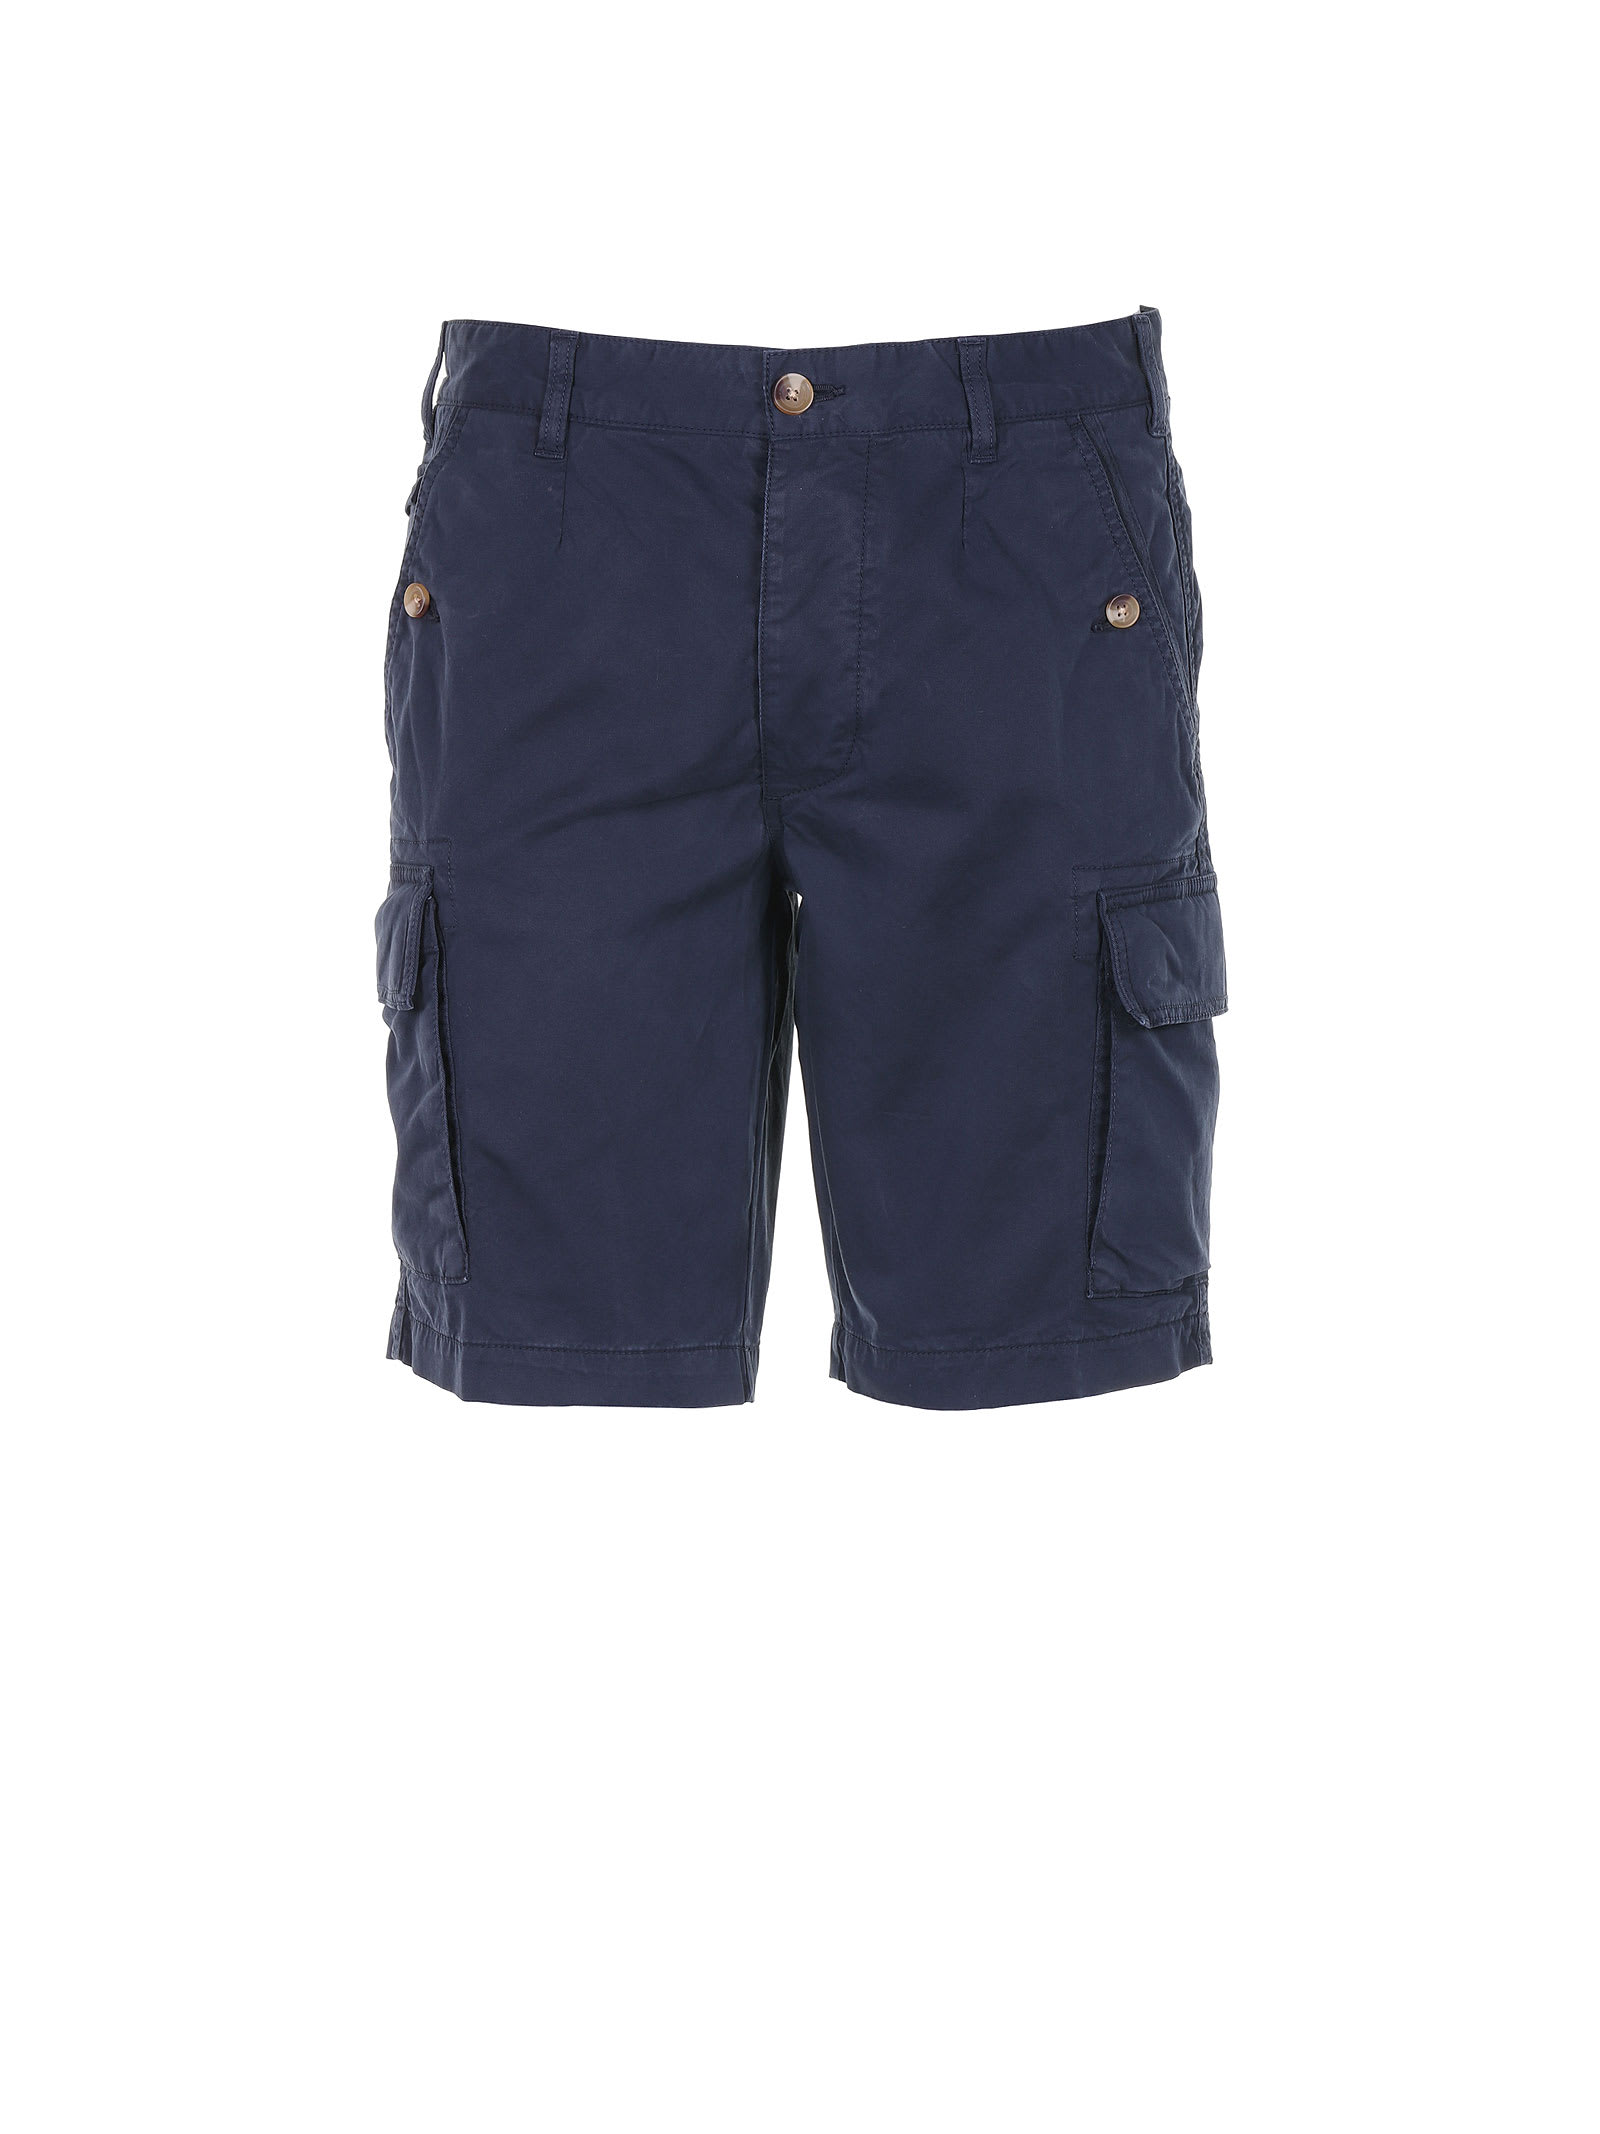 Shorts With Side Pockets